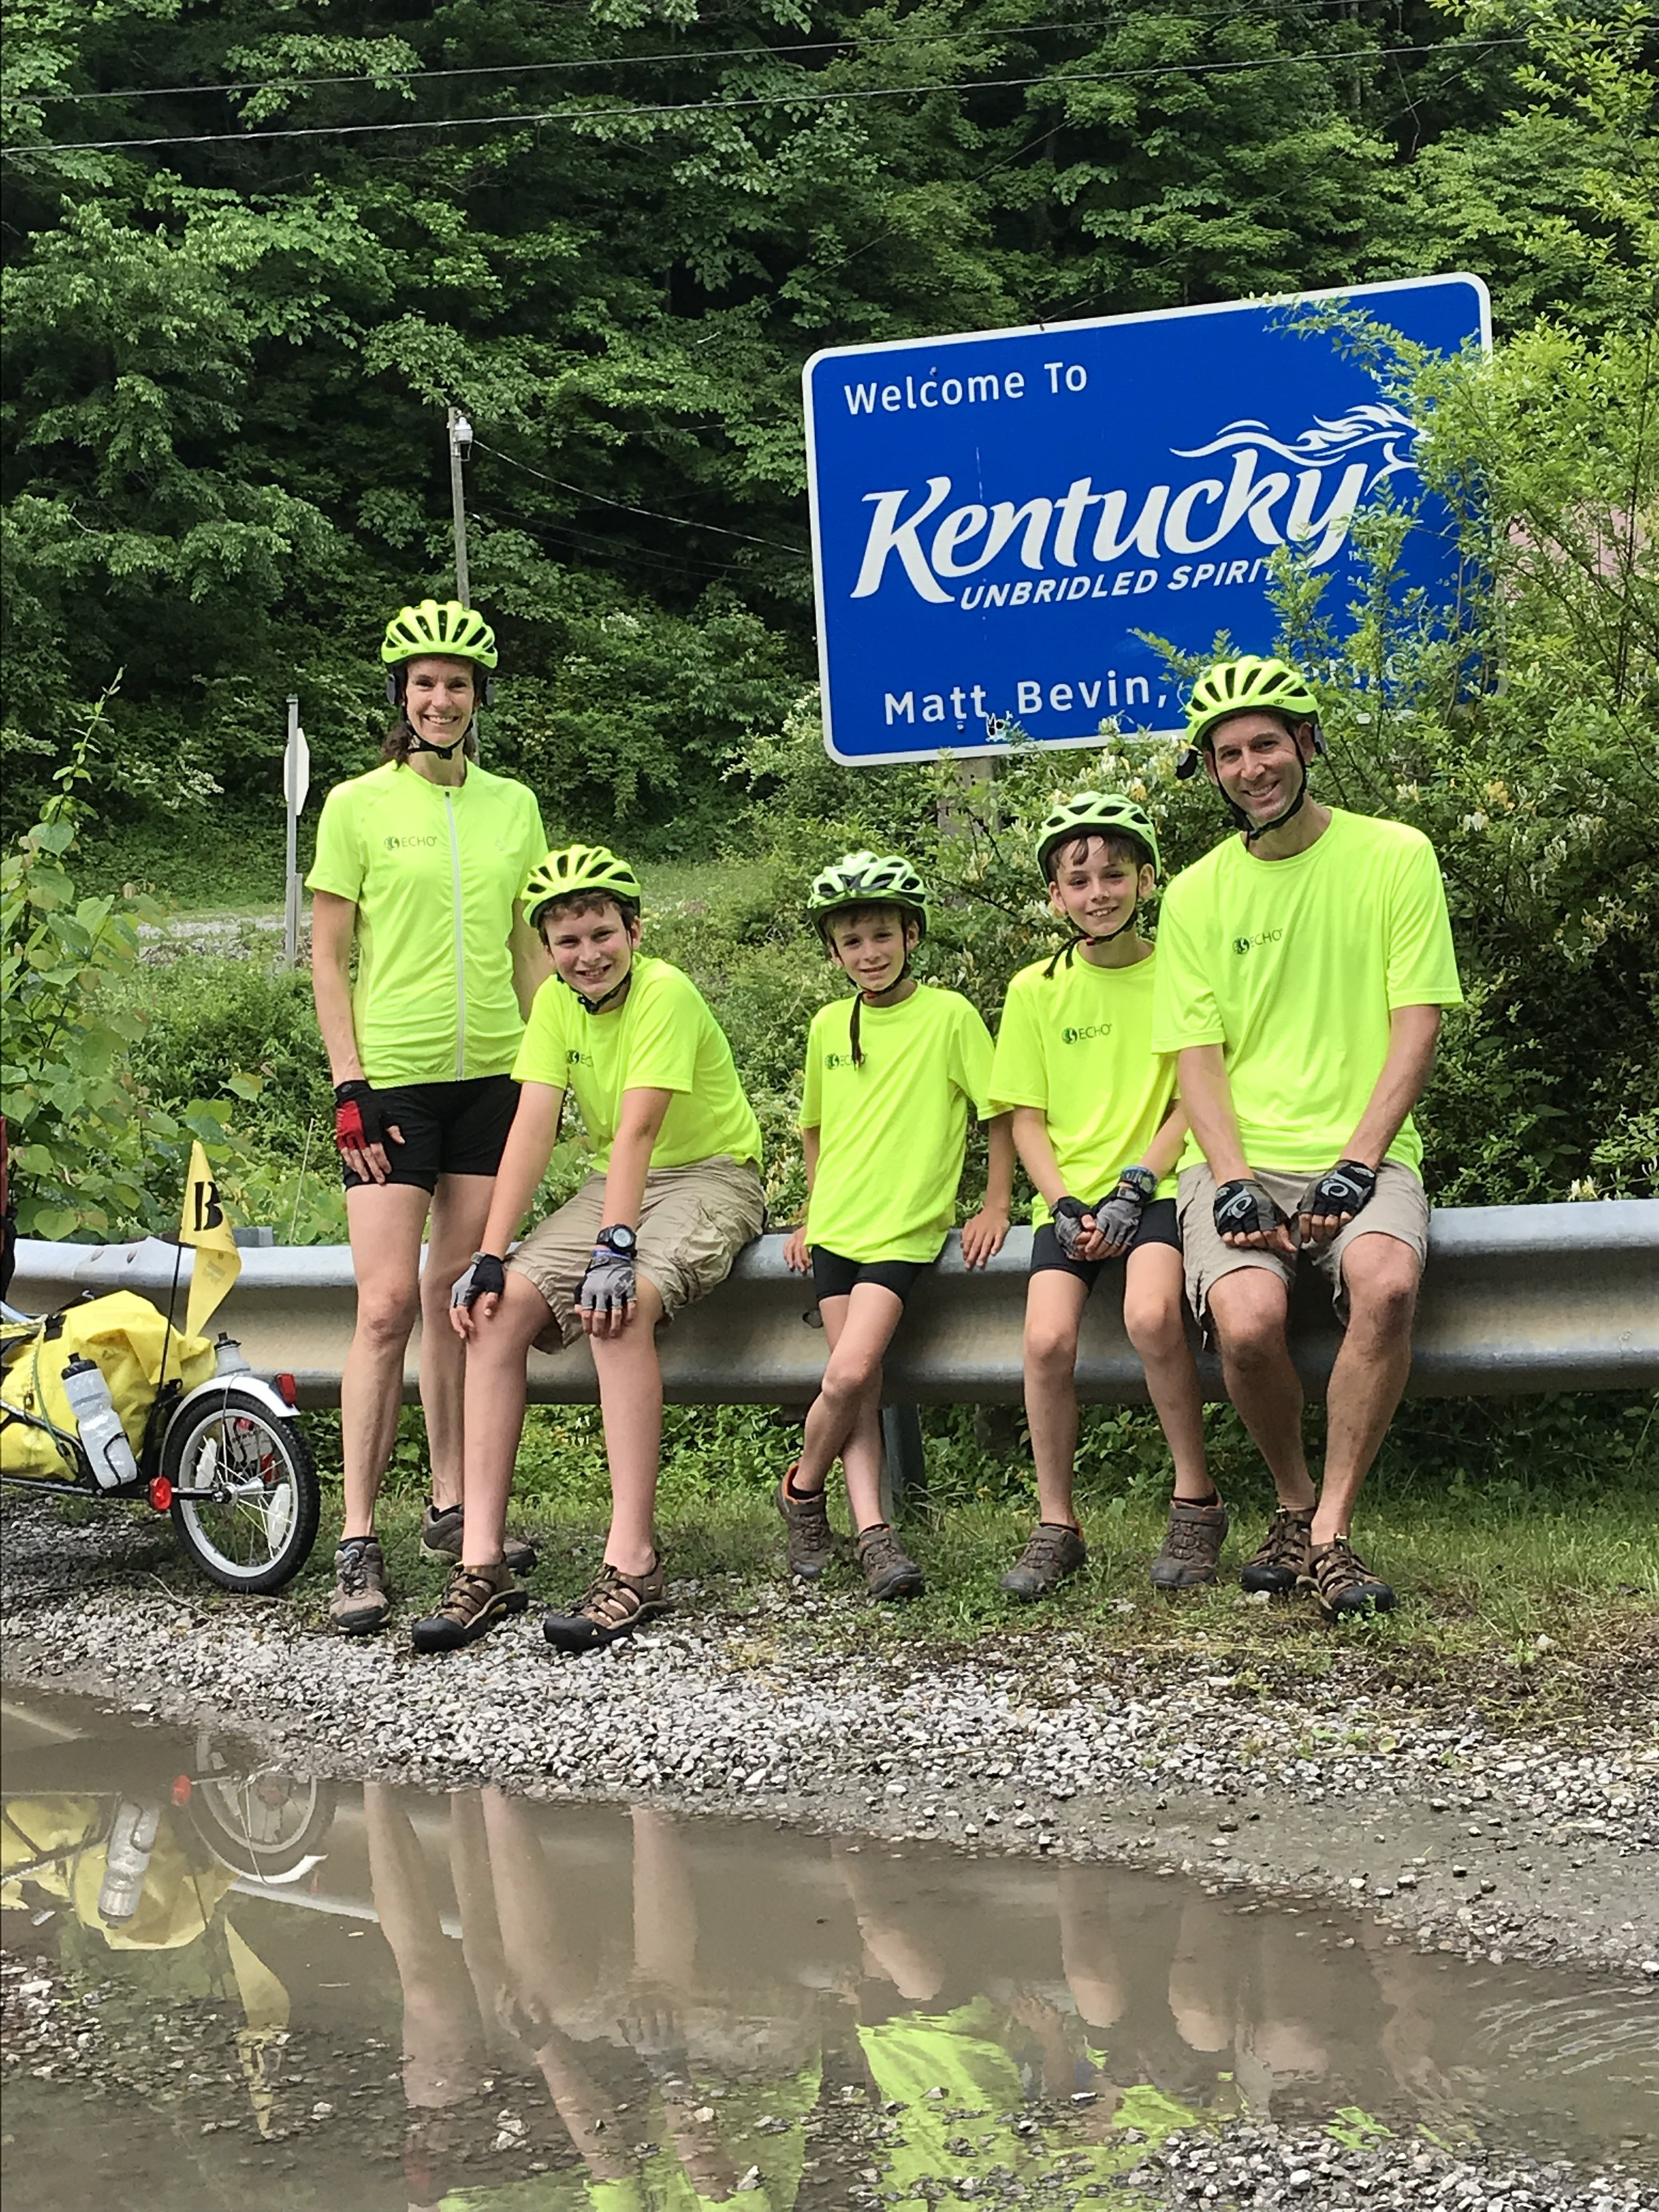 Here we are at the Kentucky line! Yippee!